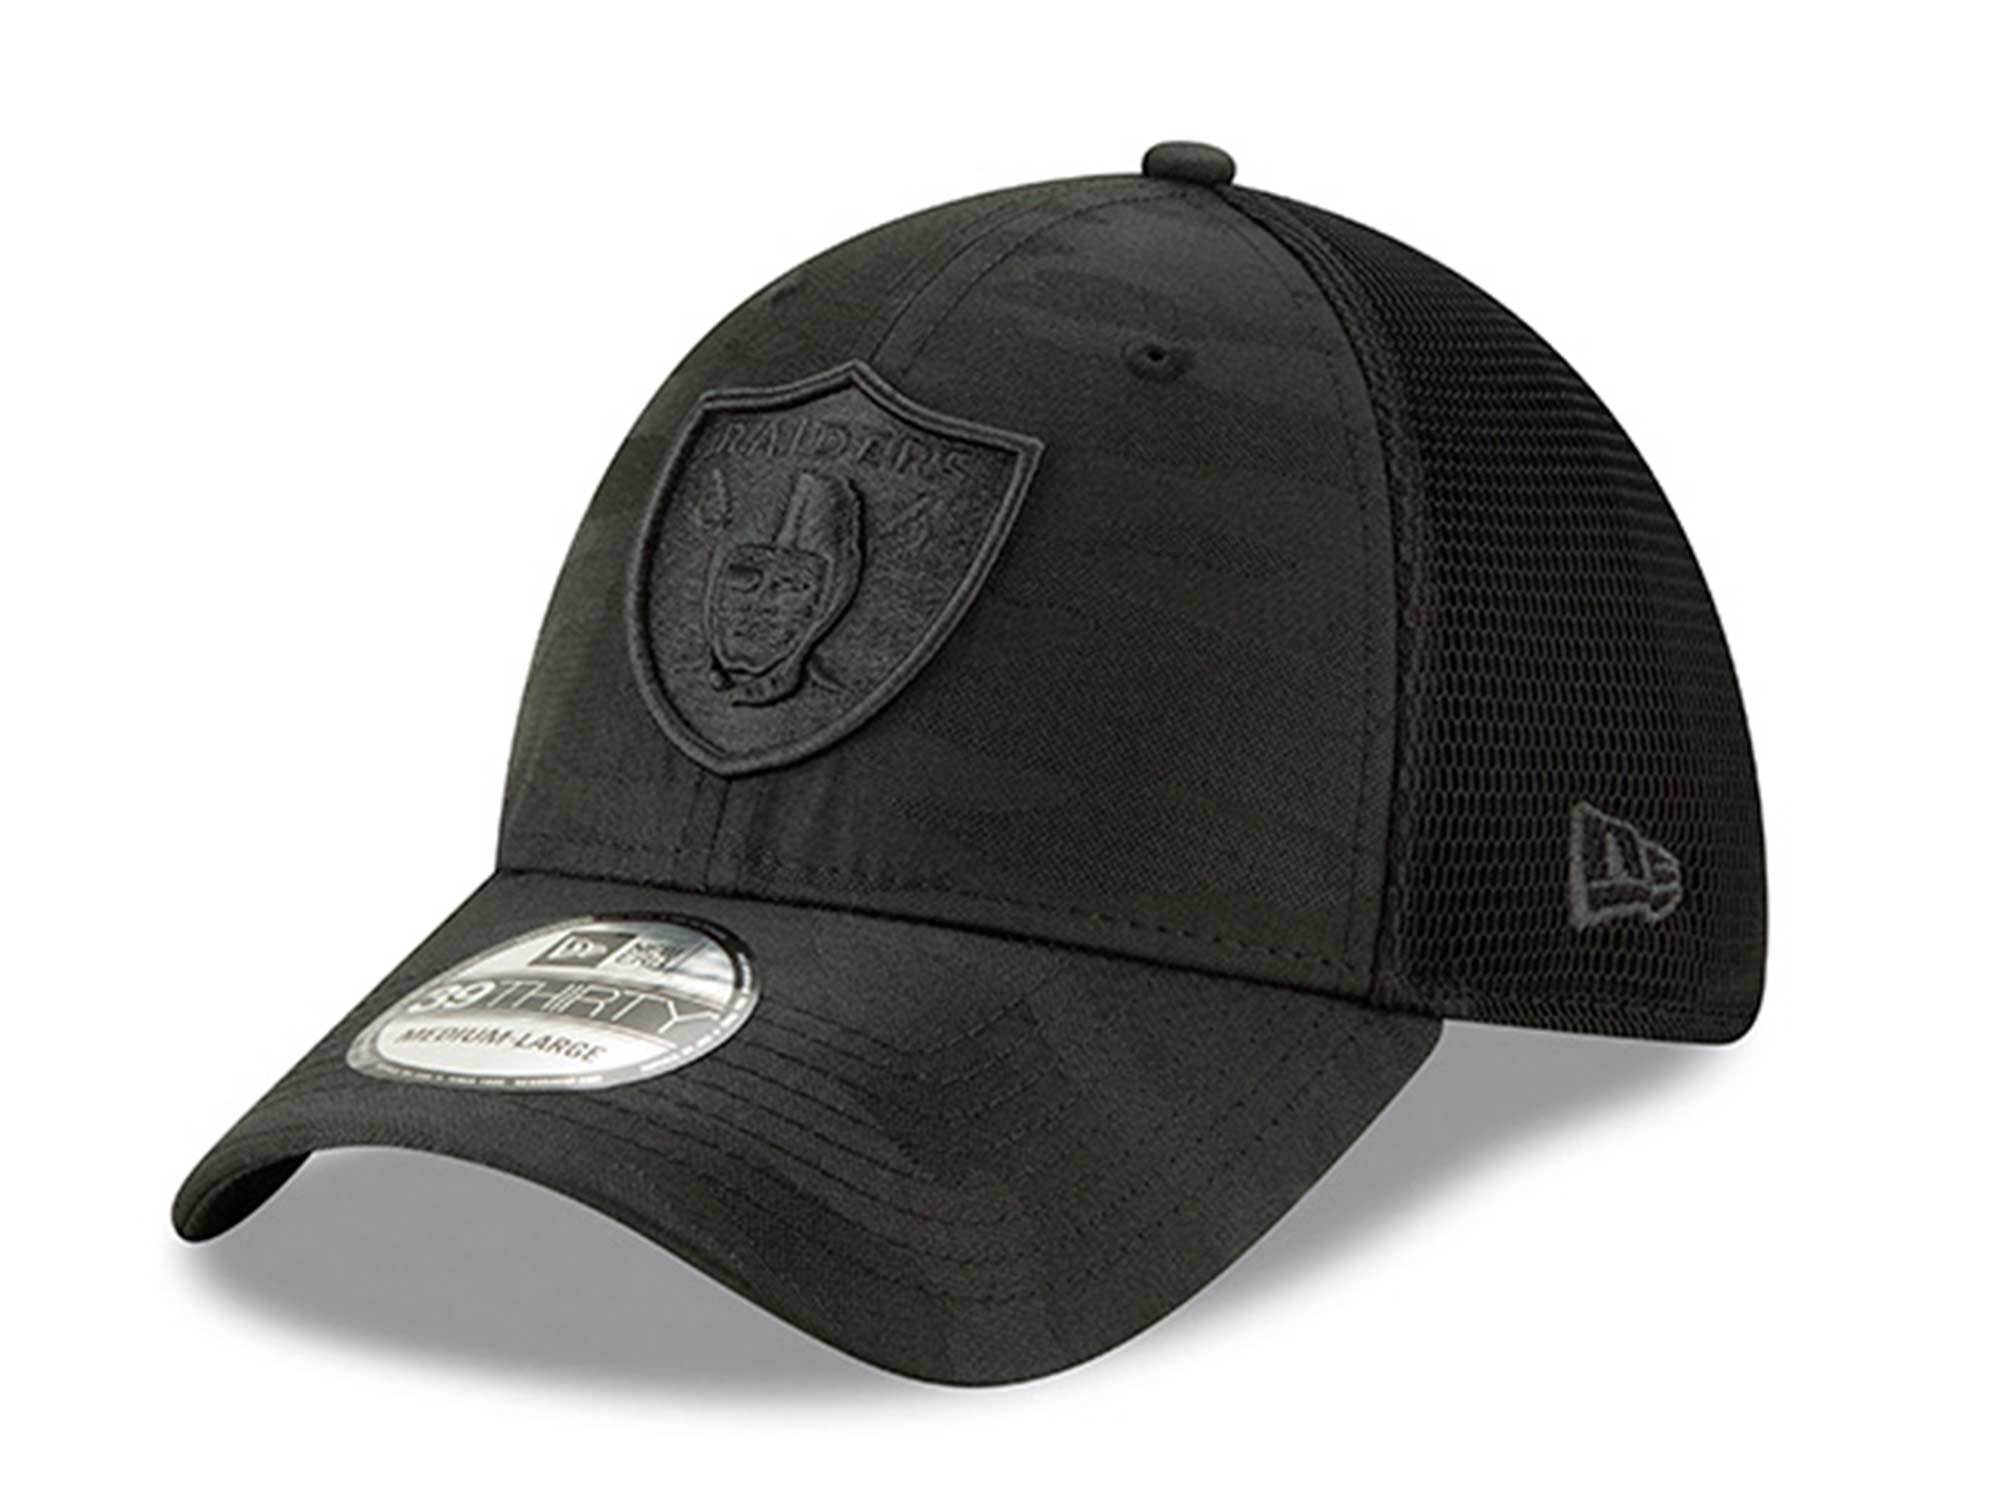 Jockey Mlb 3930 Oakland Raiders Unisex